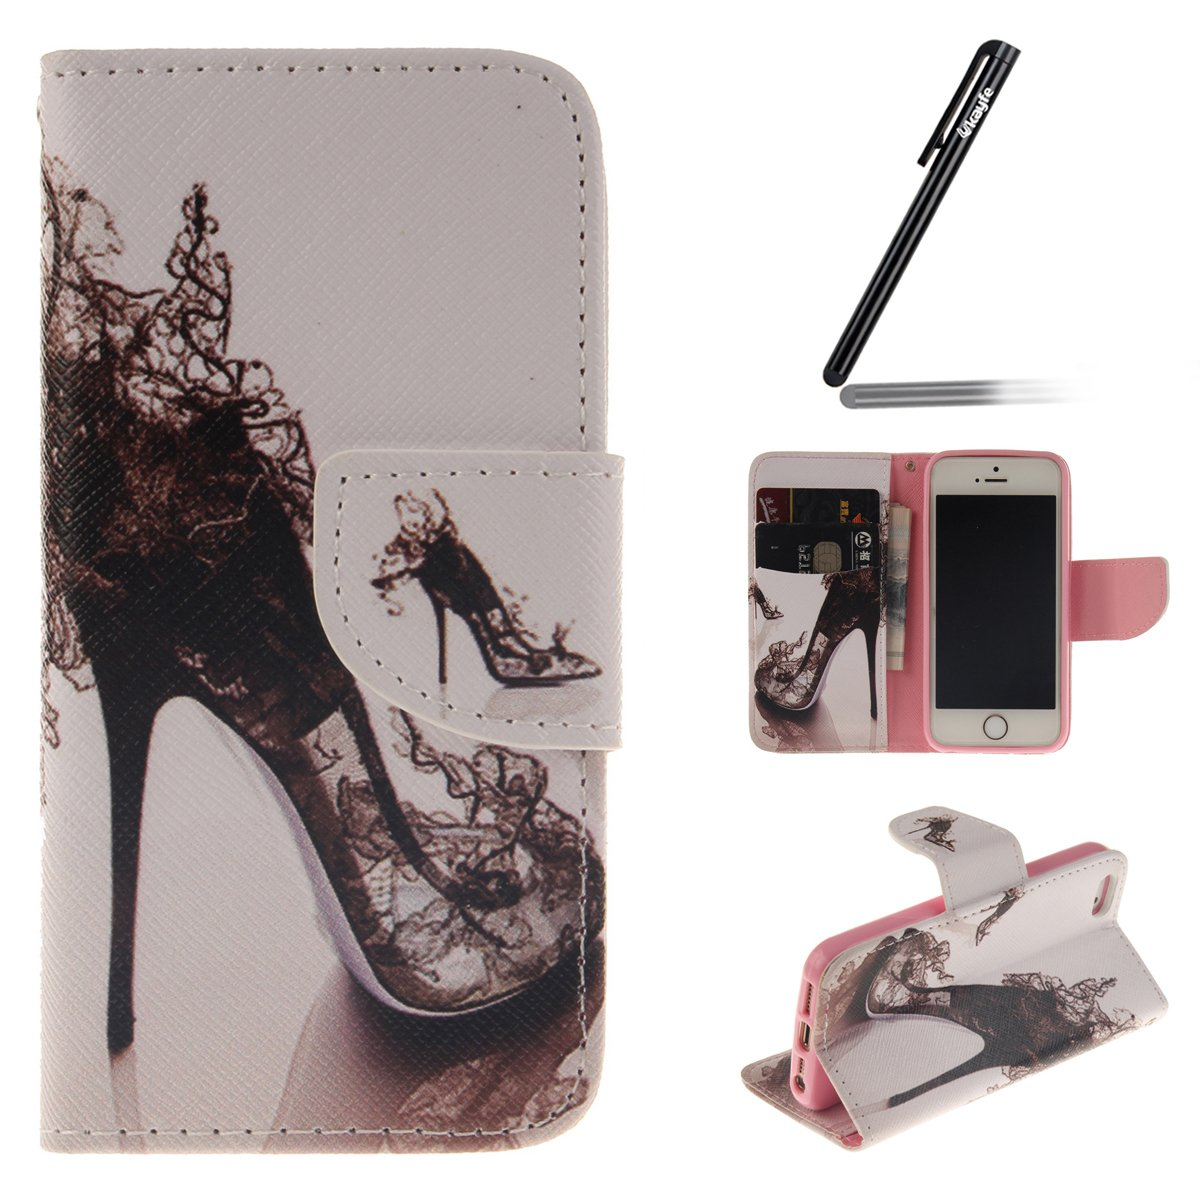 iPhone s Funda PU Cuero Funda Folio Carcasa para iPhone s iPhone